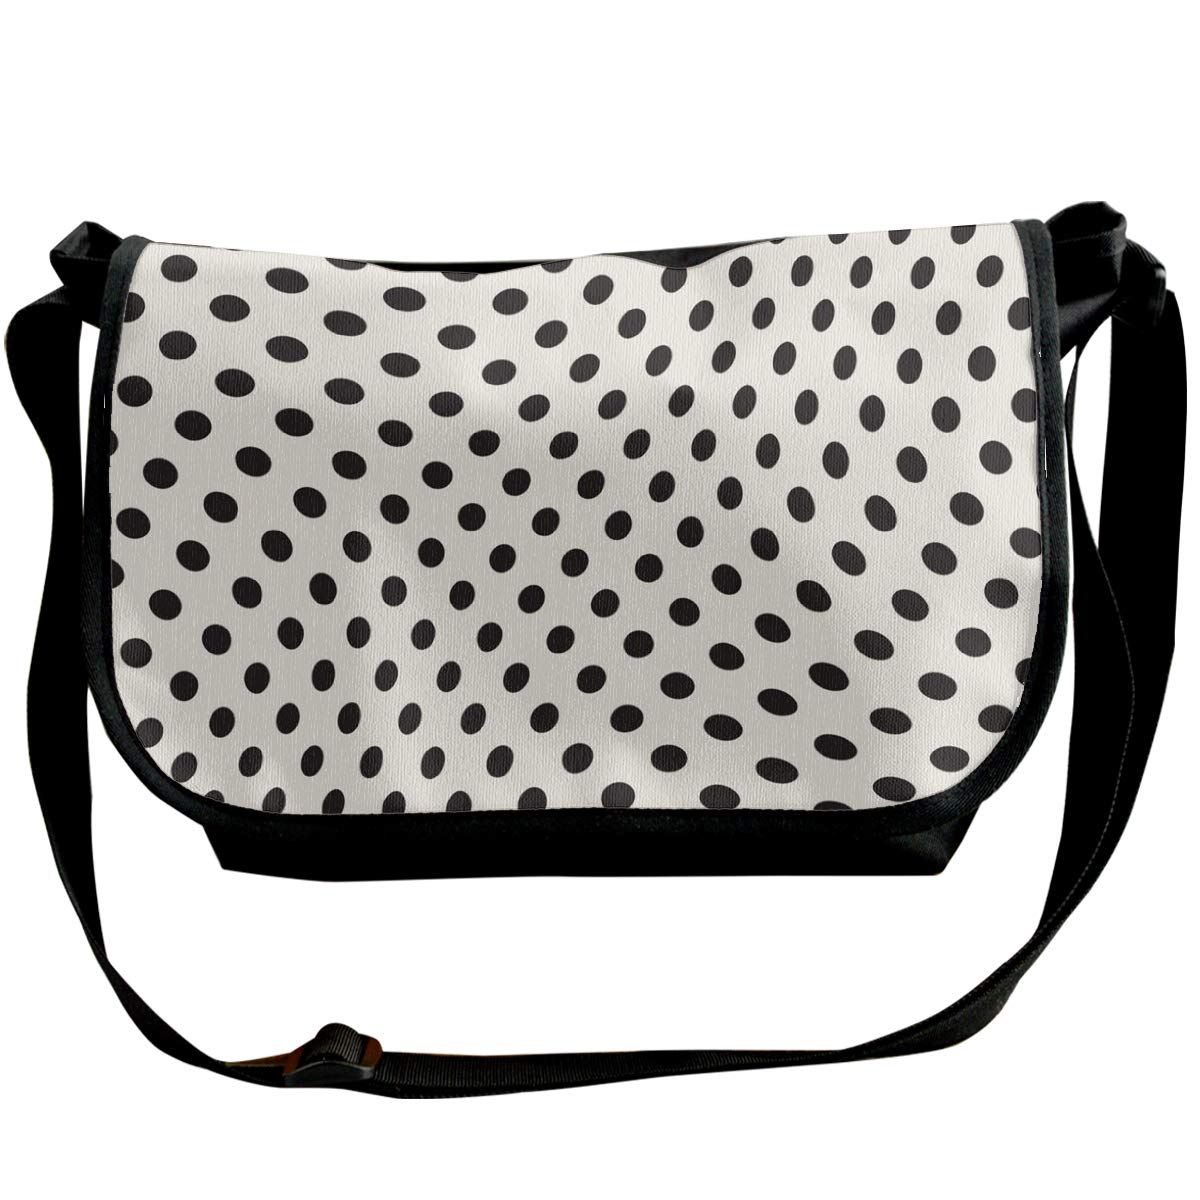 Taslilye Irregularly Twisted Polka Dots Are Customized Wide Crossbody Shoulder Bag For Men And Women For Daily Work Or Travel